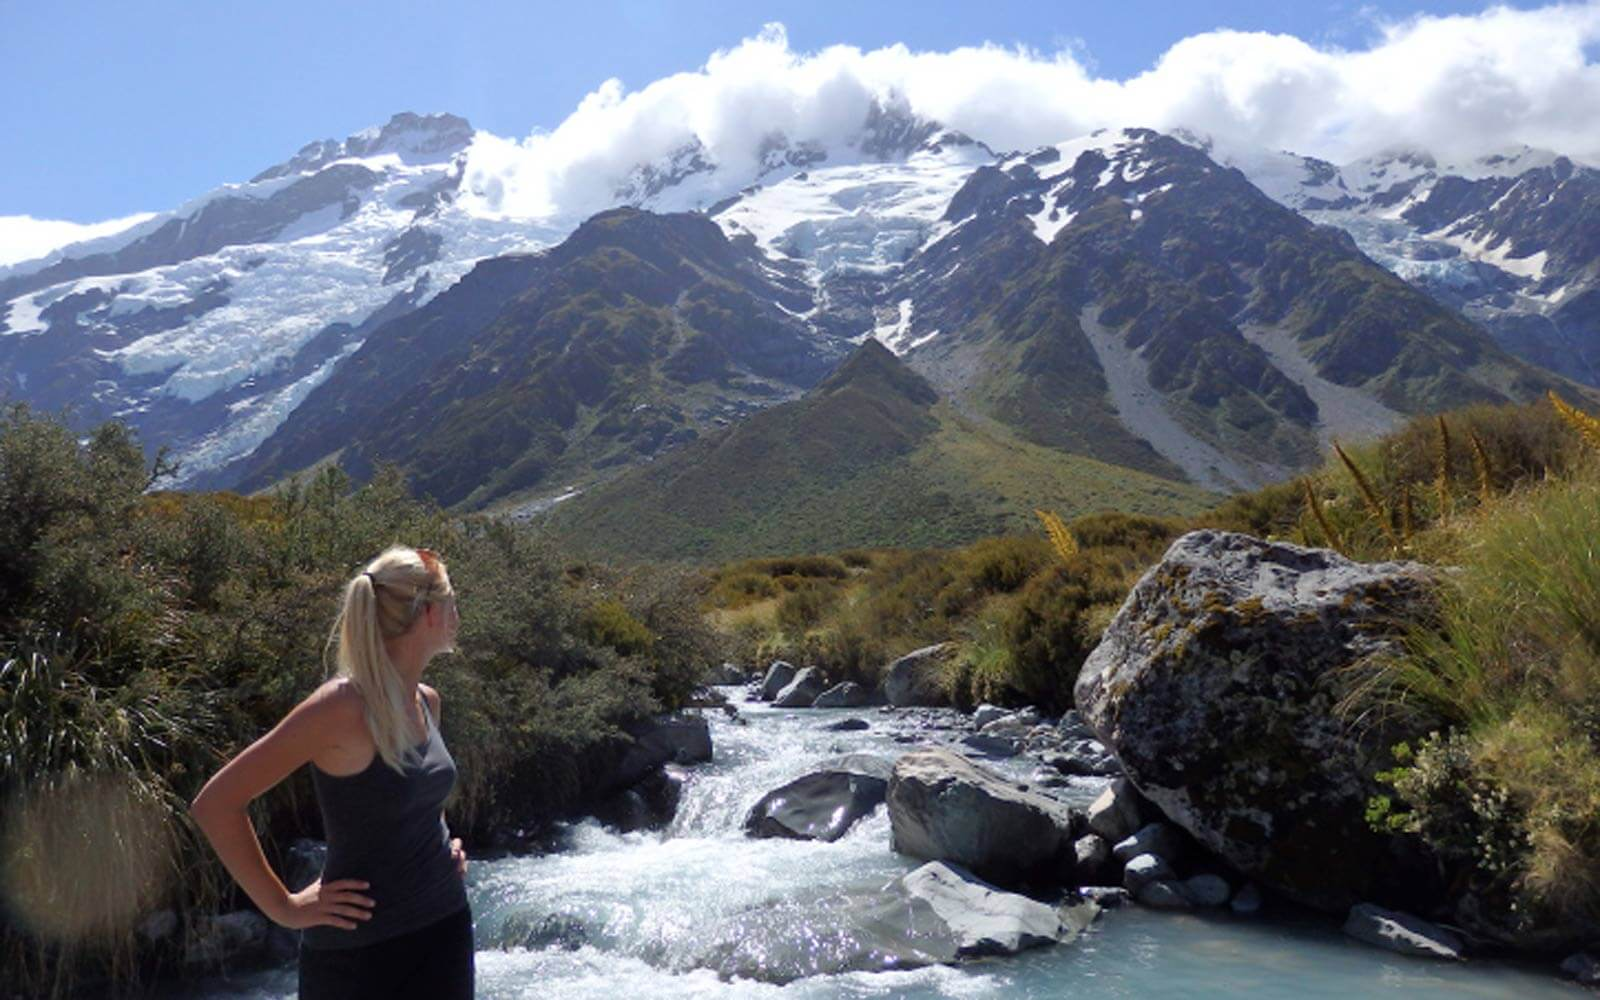 Annie bewundert die Südinsel am Mt. Cook